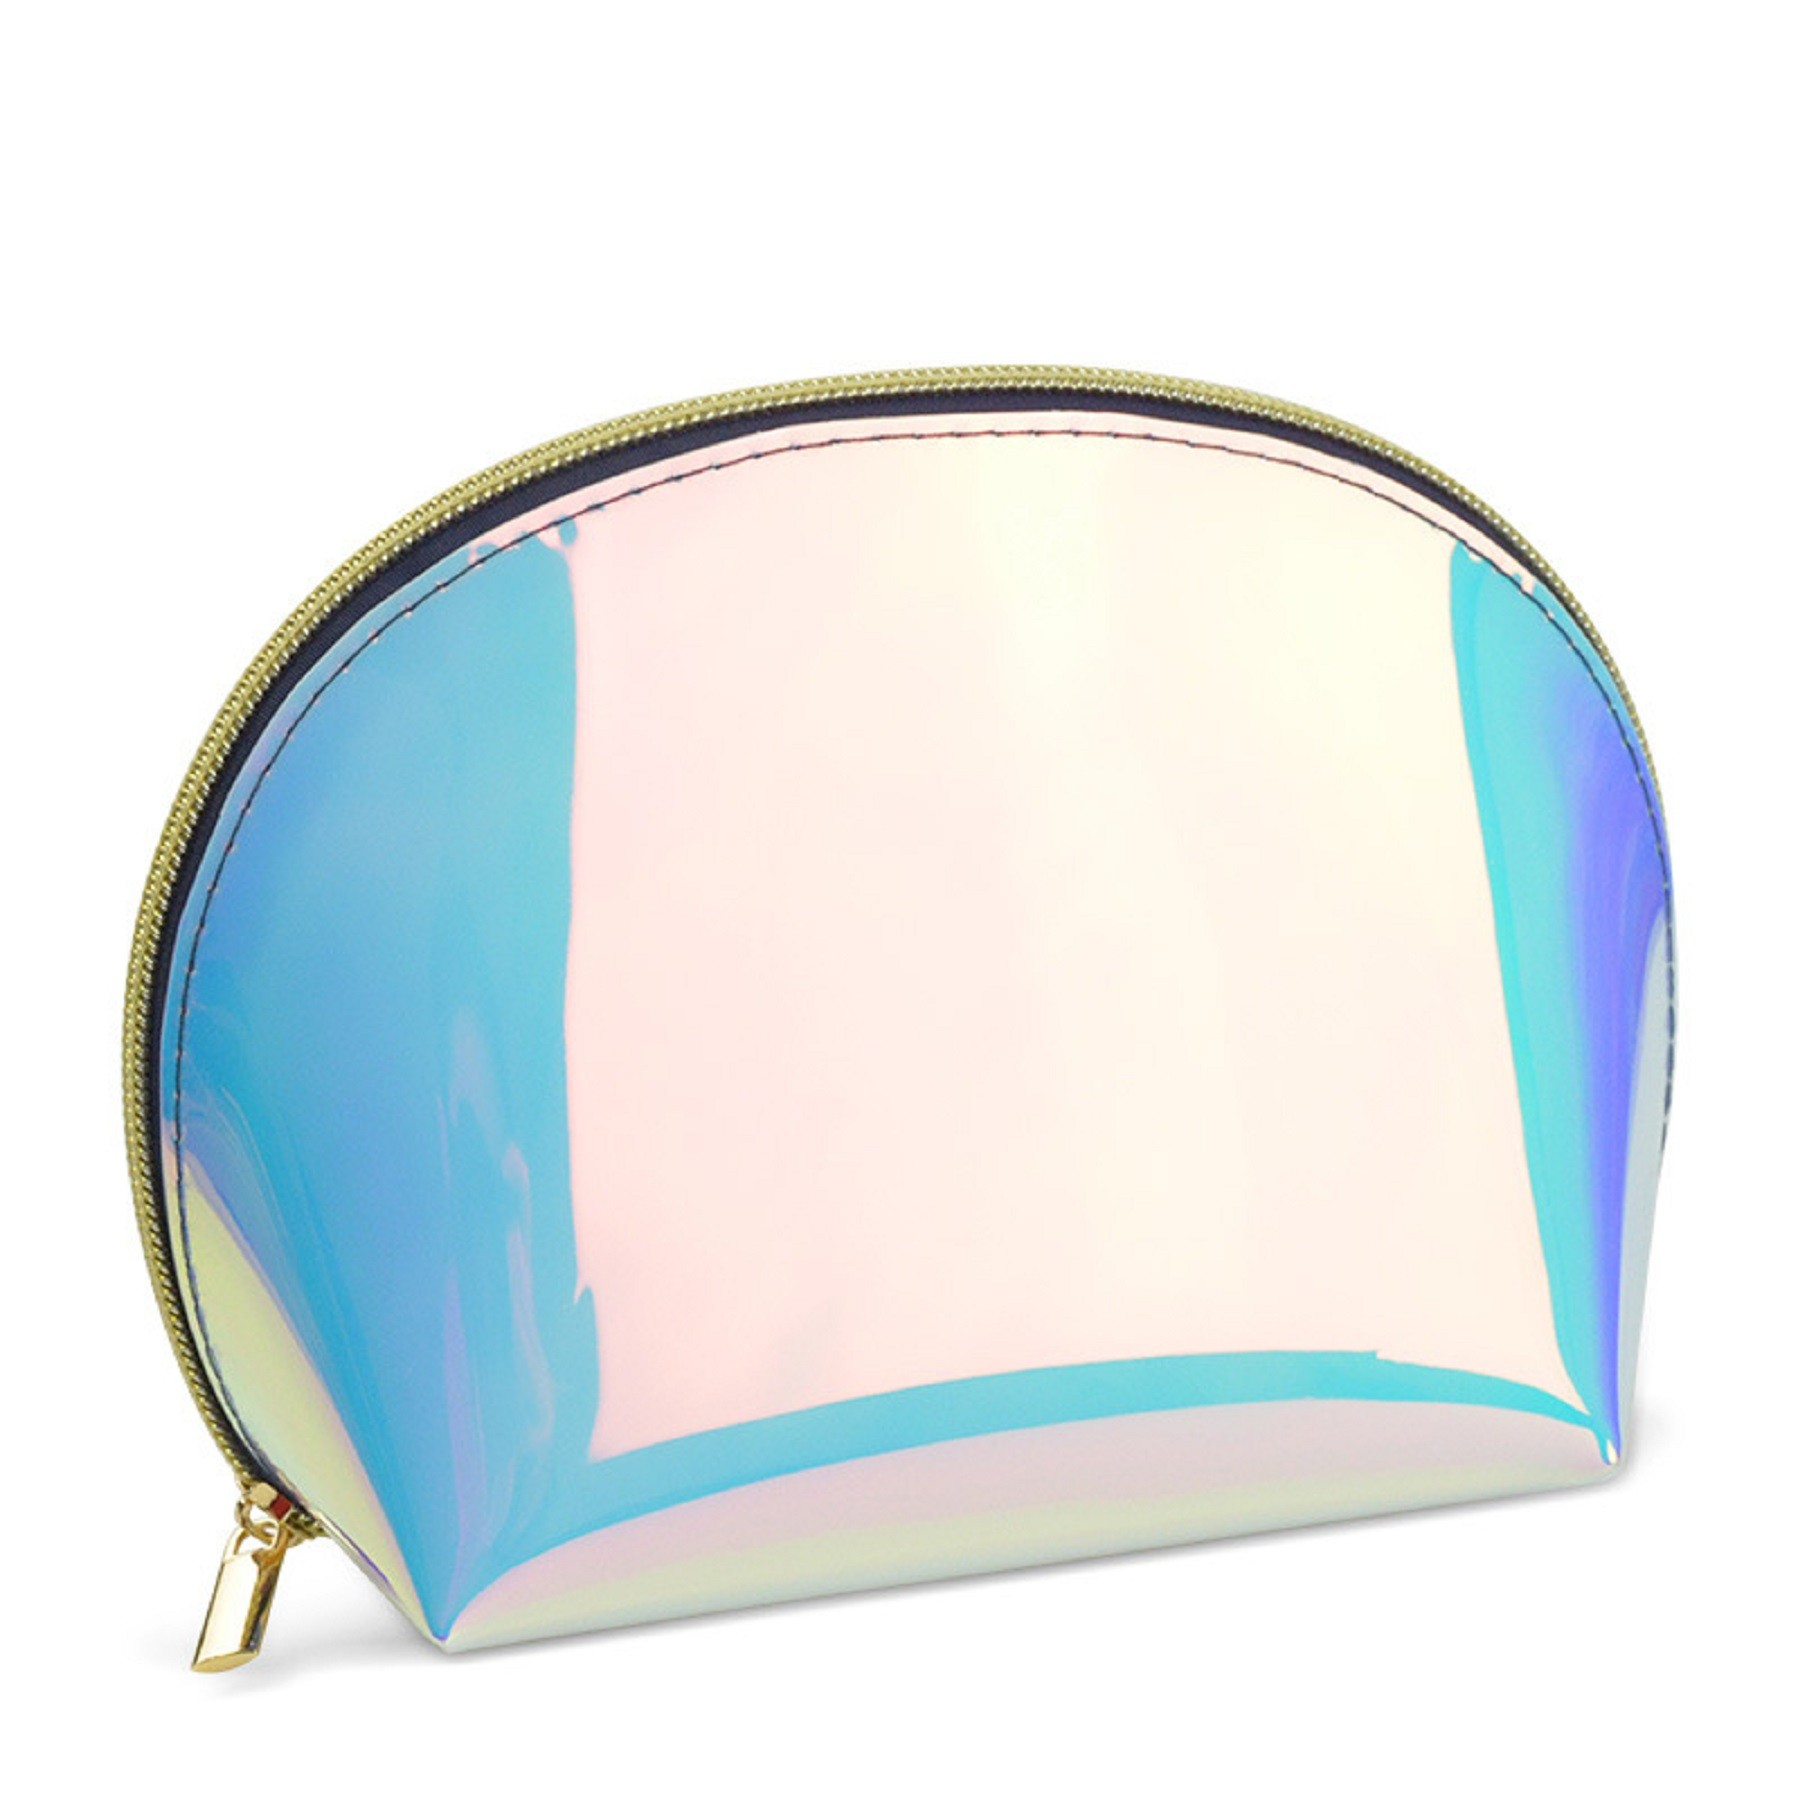 PVC holographic Cosmetic Bag,PVC Holographic Cosmetic Bag Supplier And Wholesaler In China,COSMETIC BAG